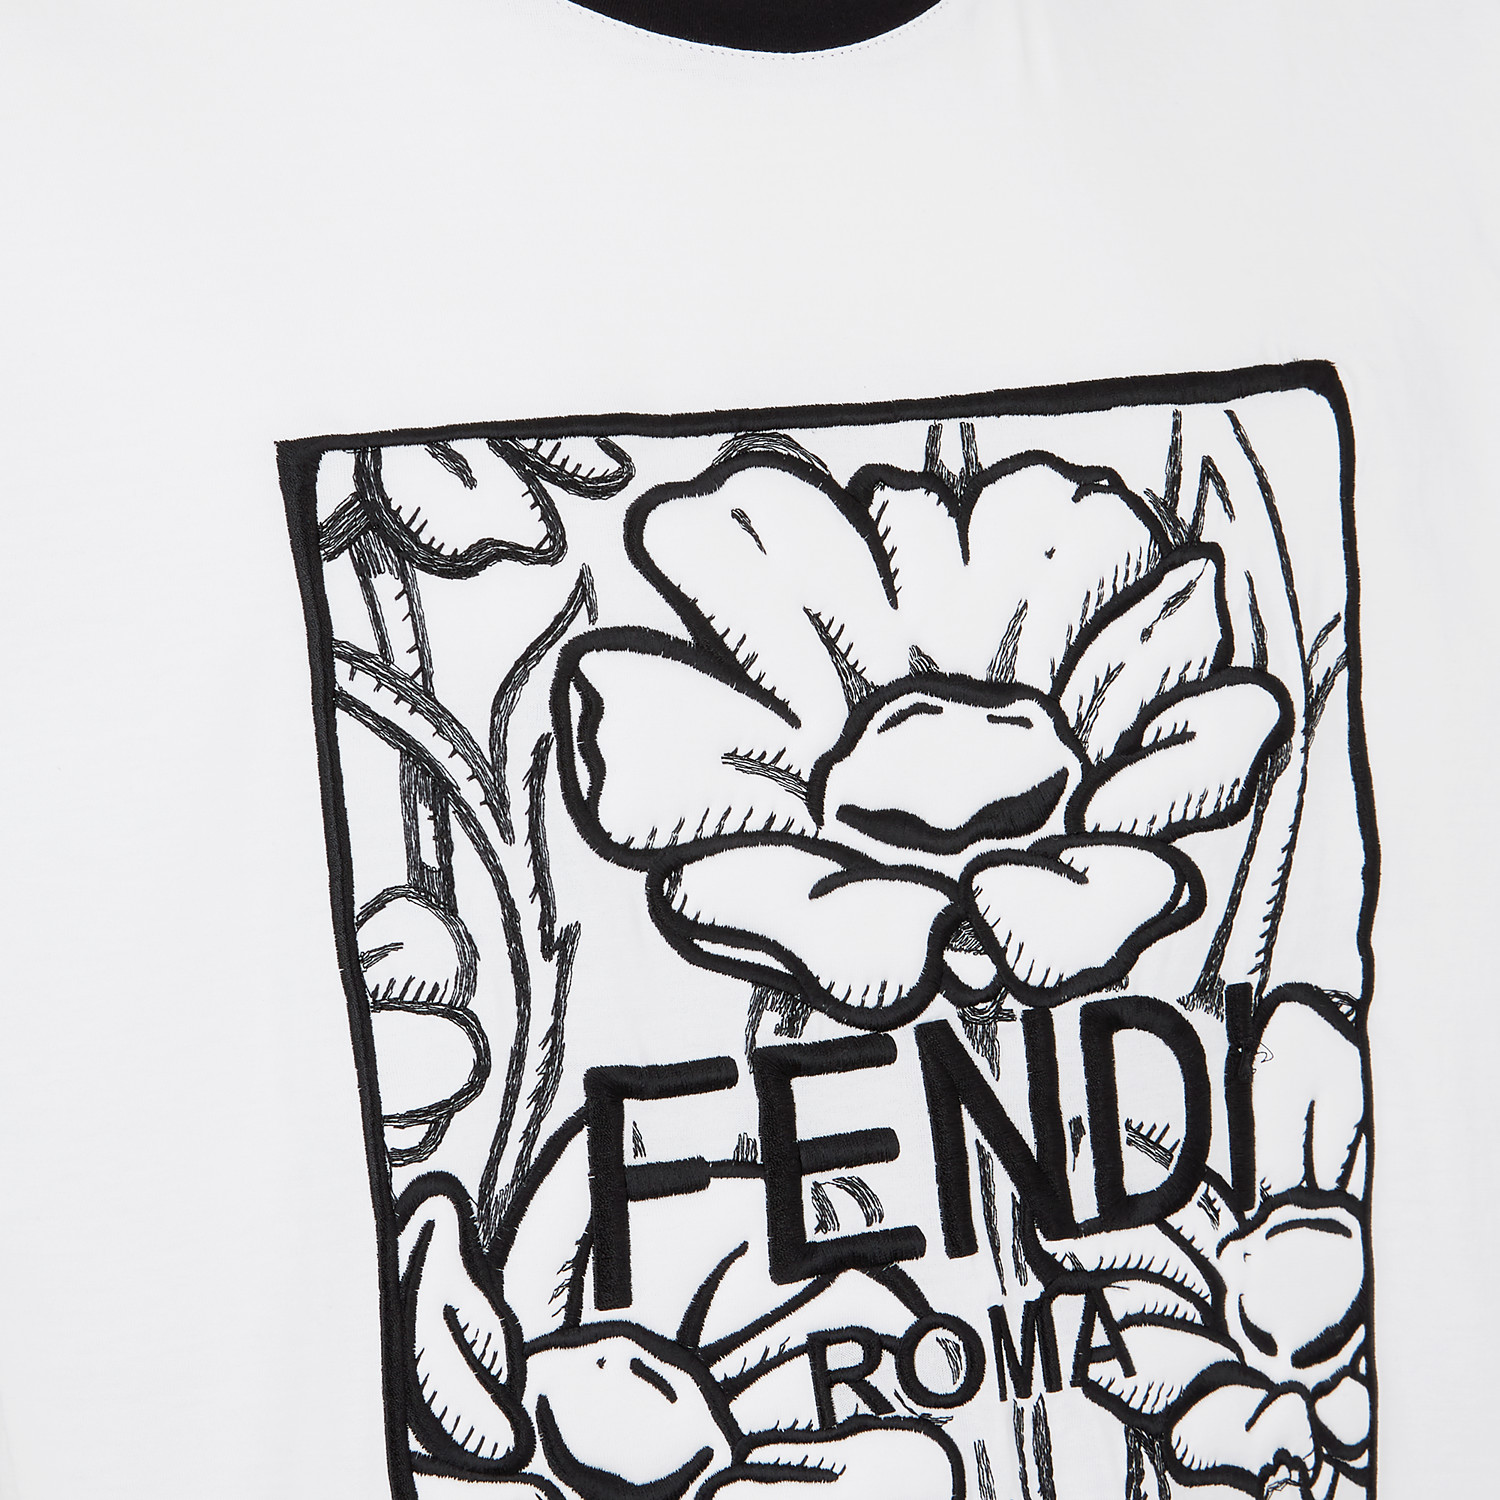 FENDI T-SHIRT - Fendi Roma Joshua Vides cotton T-shirt - view 3 detail